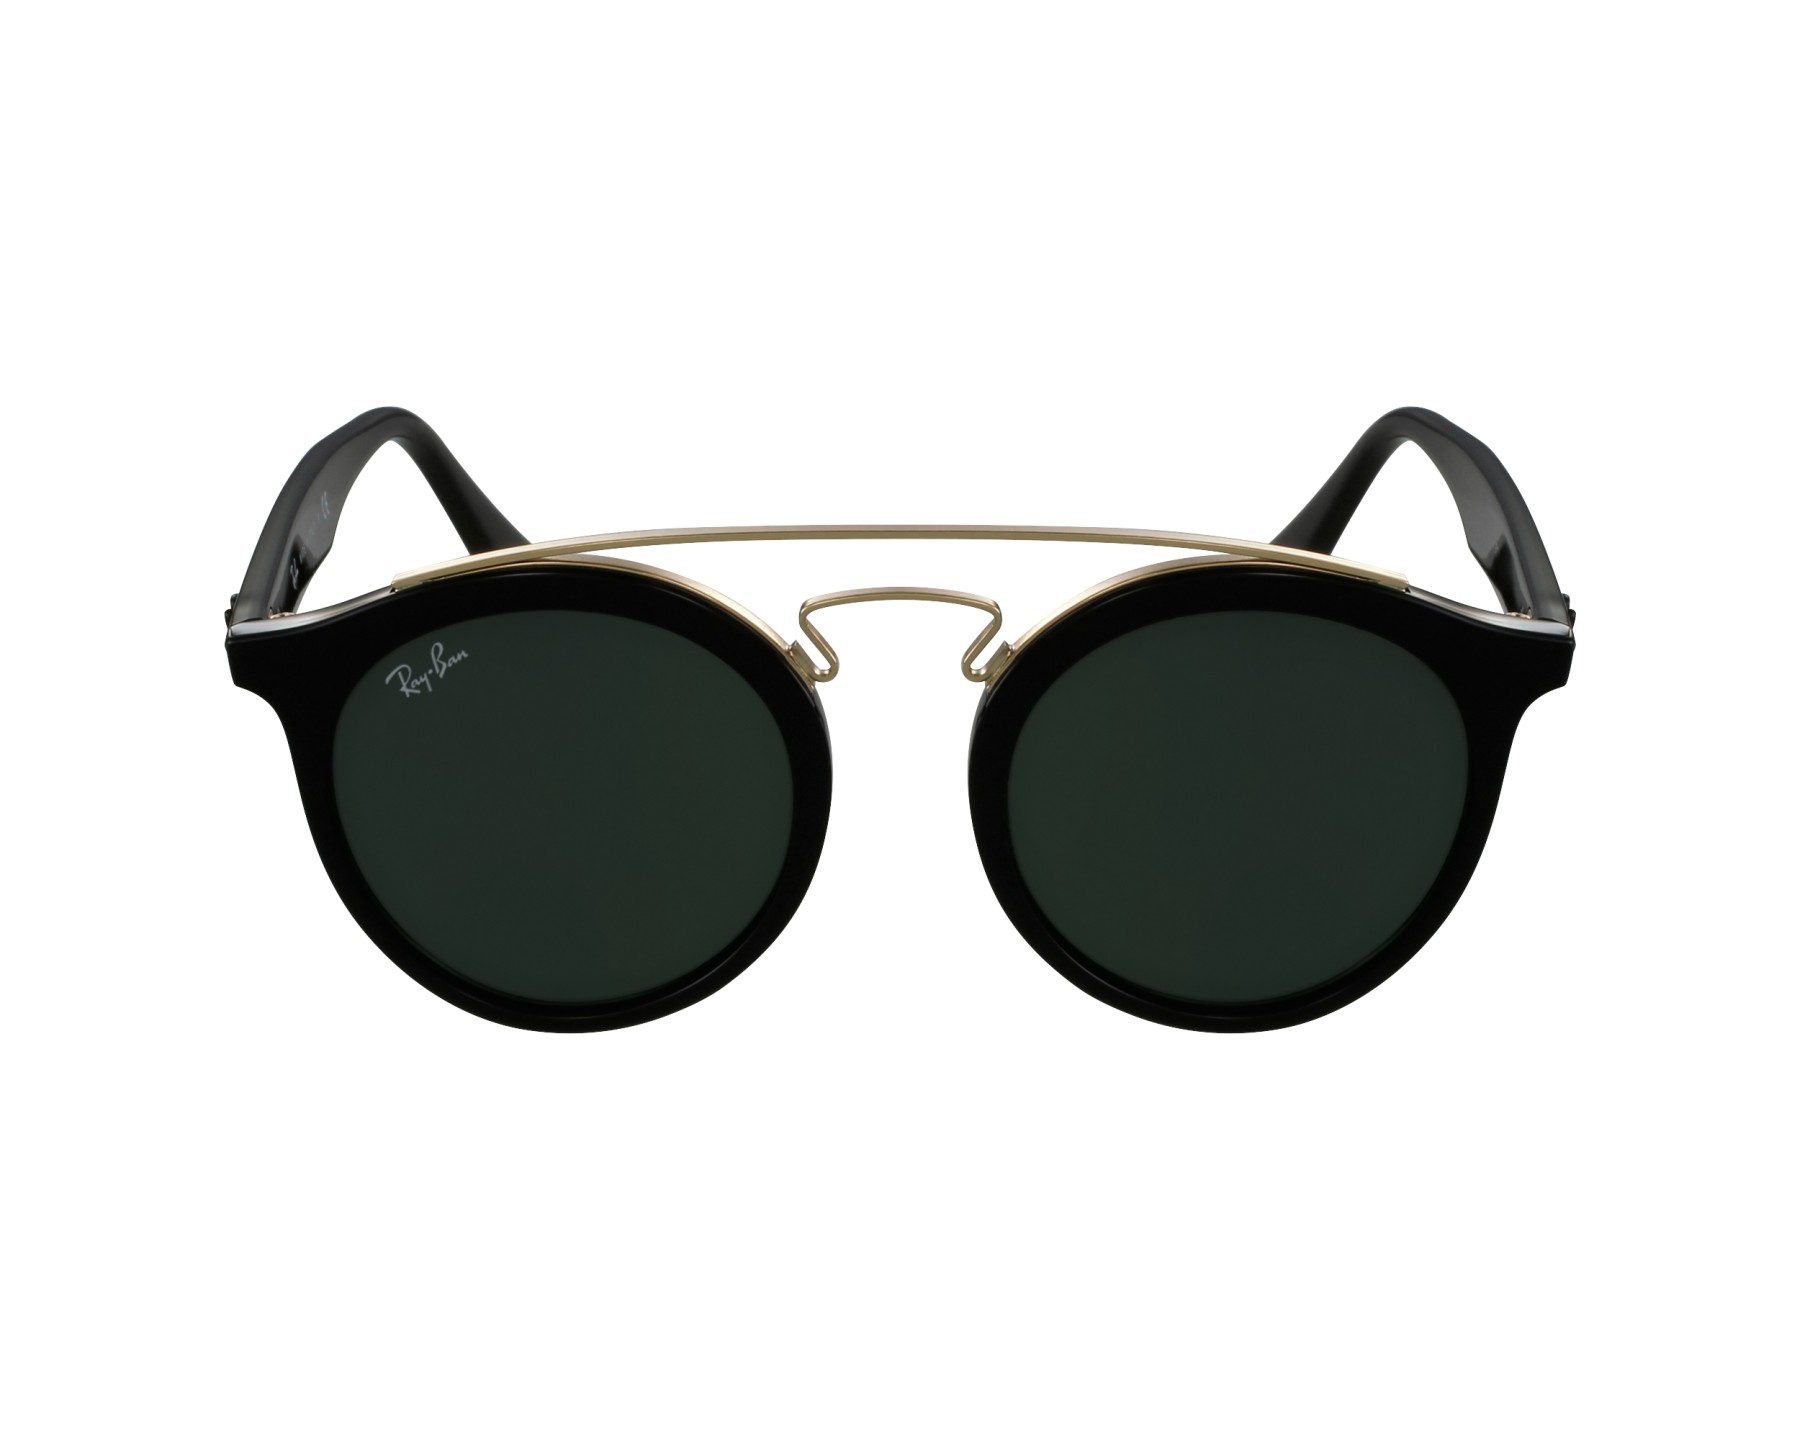 Sunglasses Ray-Ban RB-4256 601 71 46-20 Black Gold profile a82399dbb6